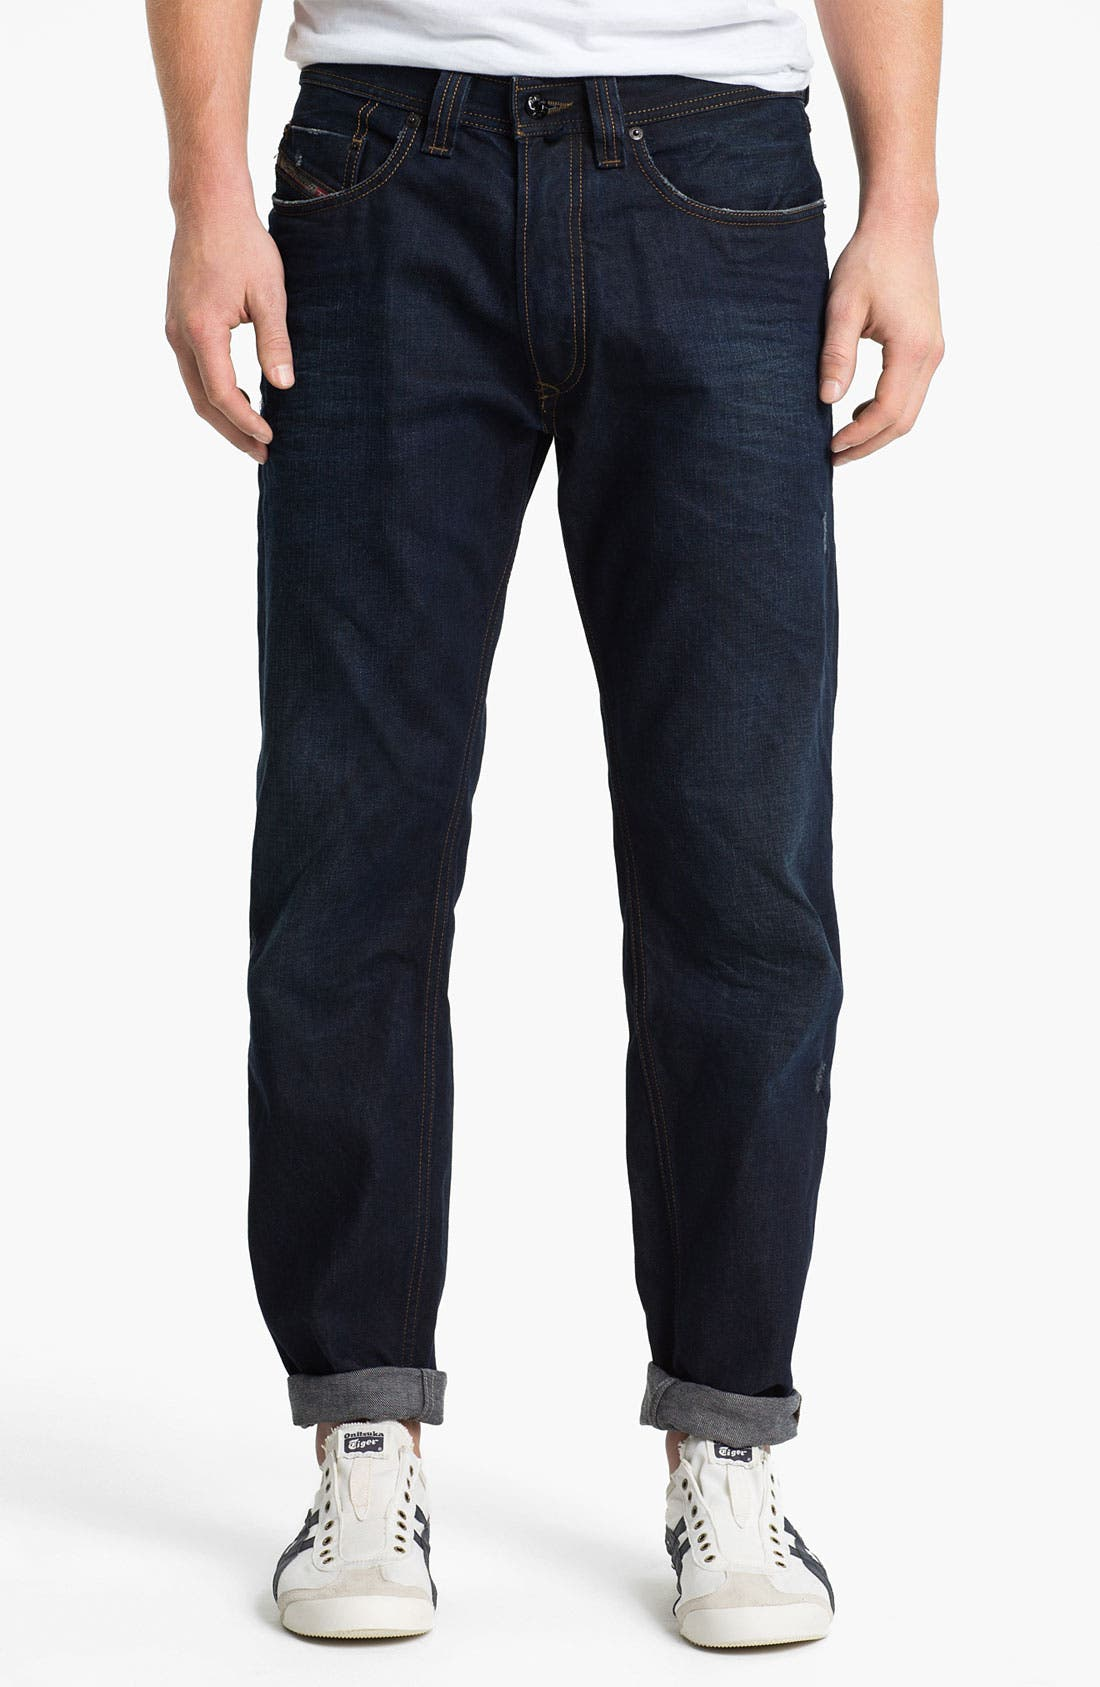 'Back in the Saddle' Relaxed Tapered Leg Jeans,                             Alternate thumbnail 4, color,                             400